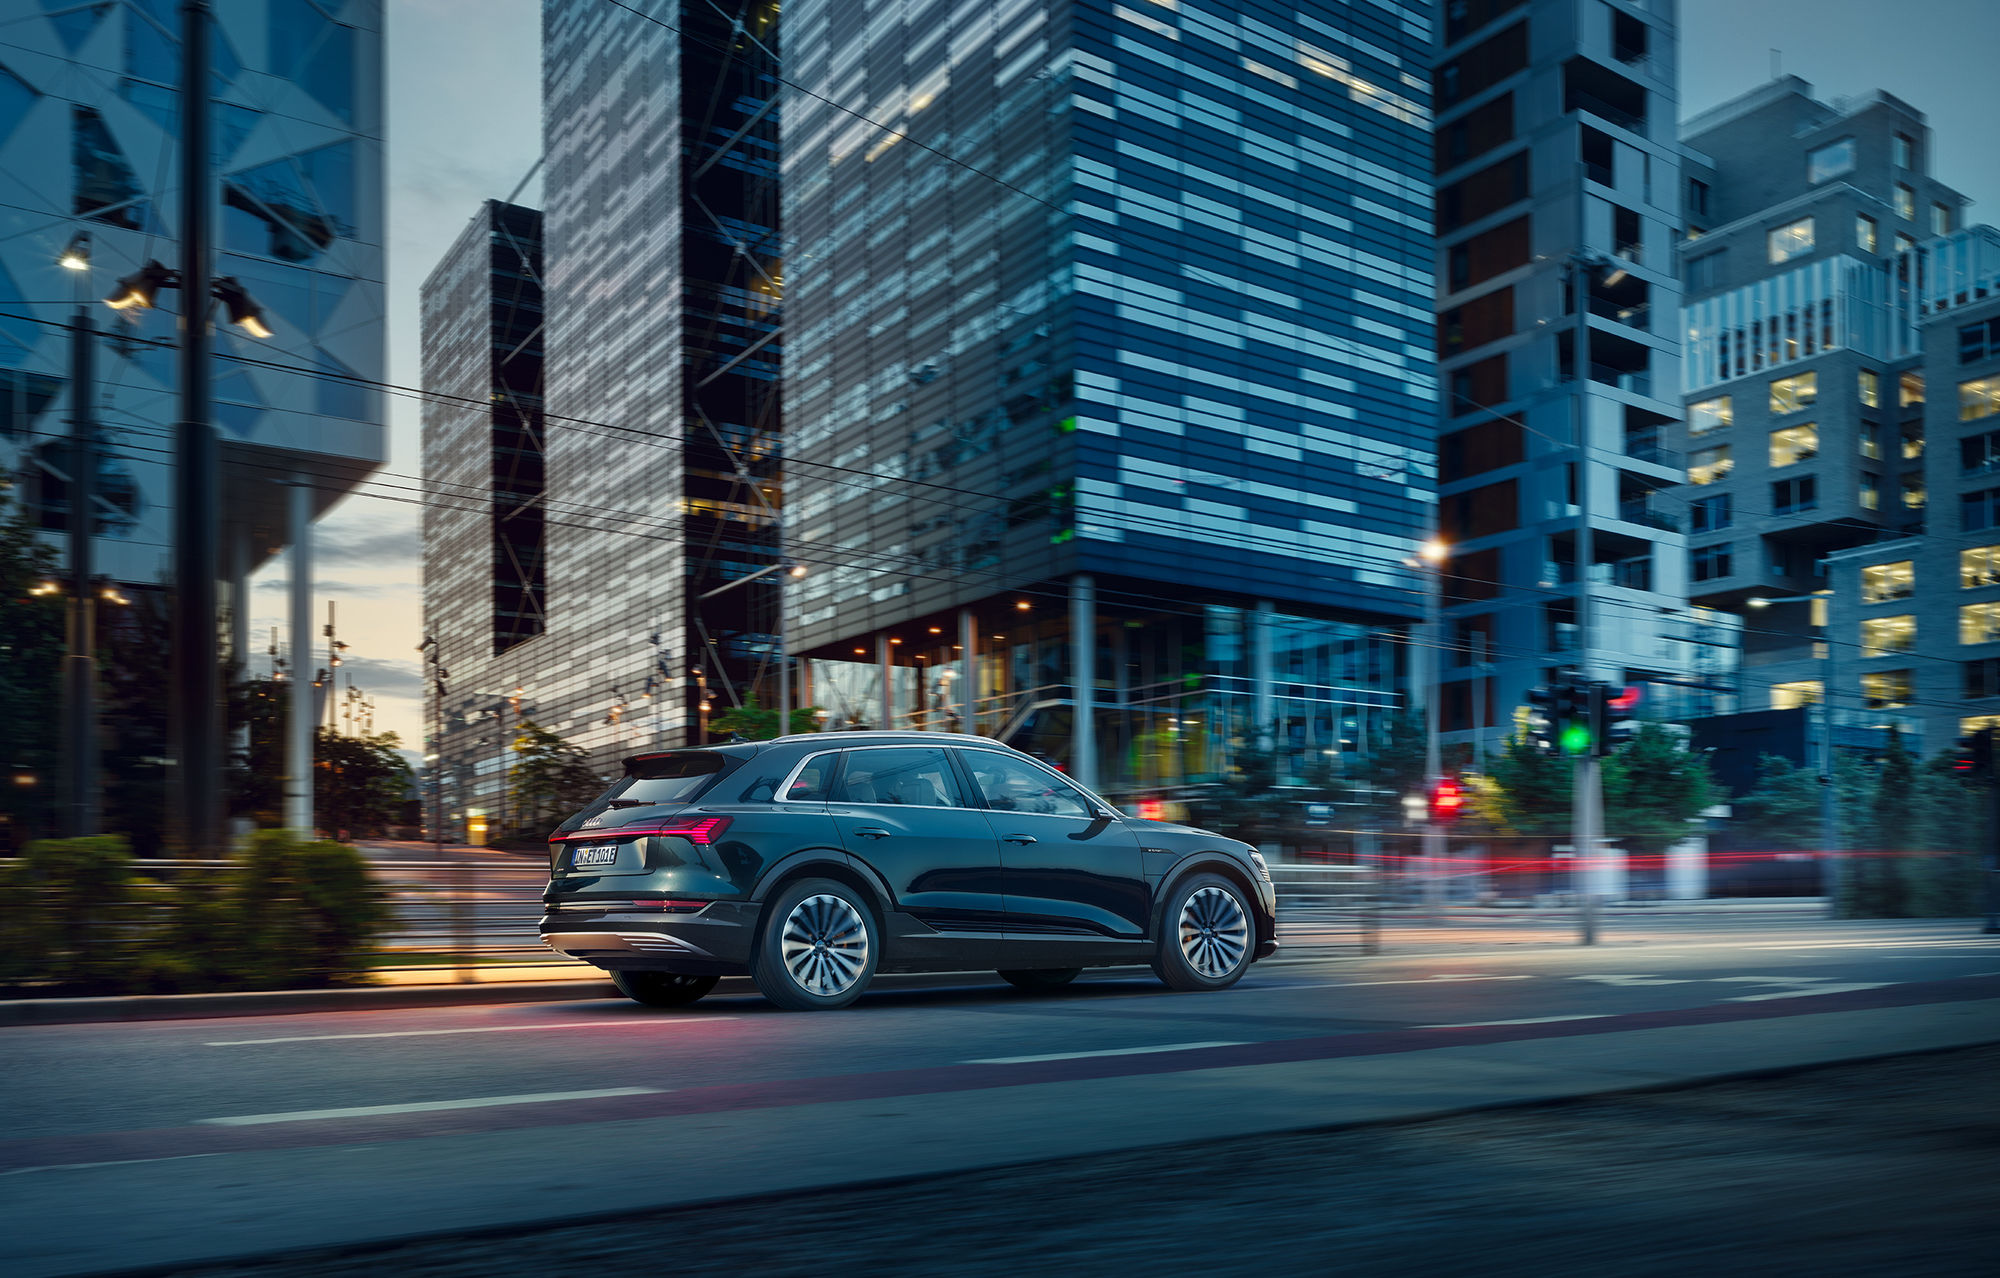 FRITHJOF OHM INCL. PRETZSCH international catalogue artwork for the first all-electric AUDI e-tron